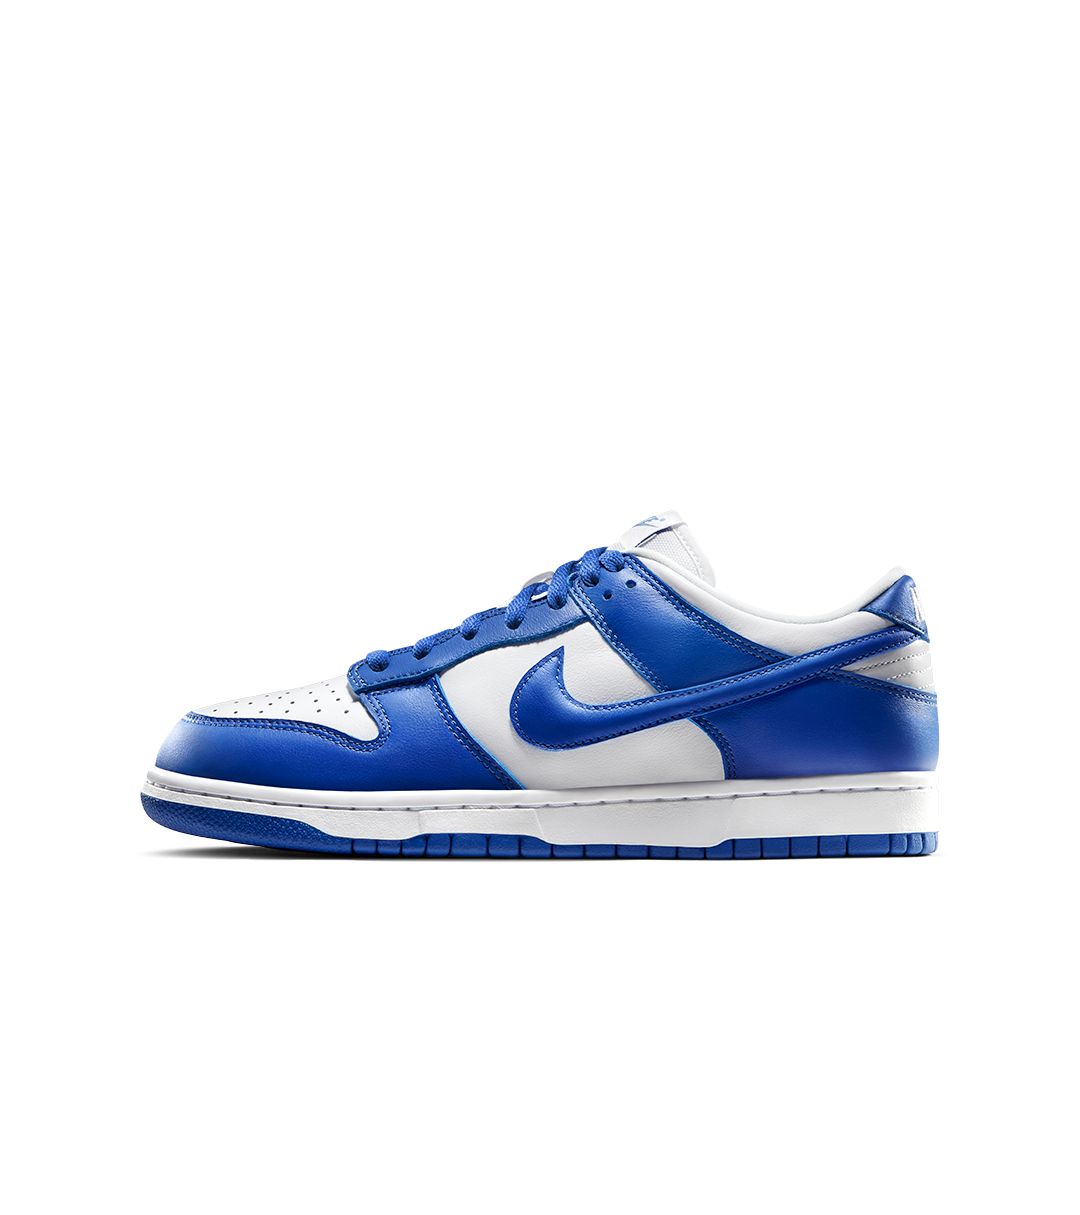 Dunk Low 'Varsity Royal' Release Date